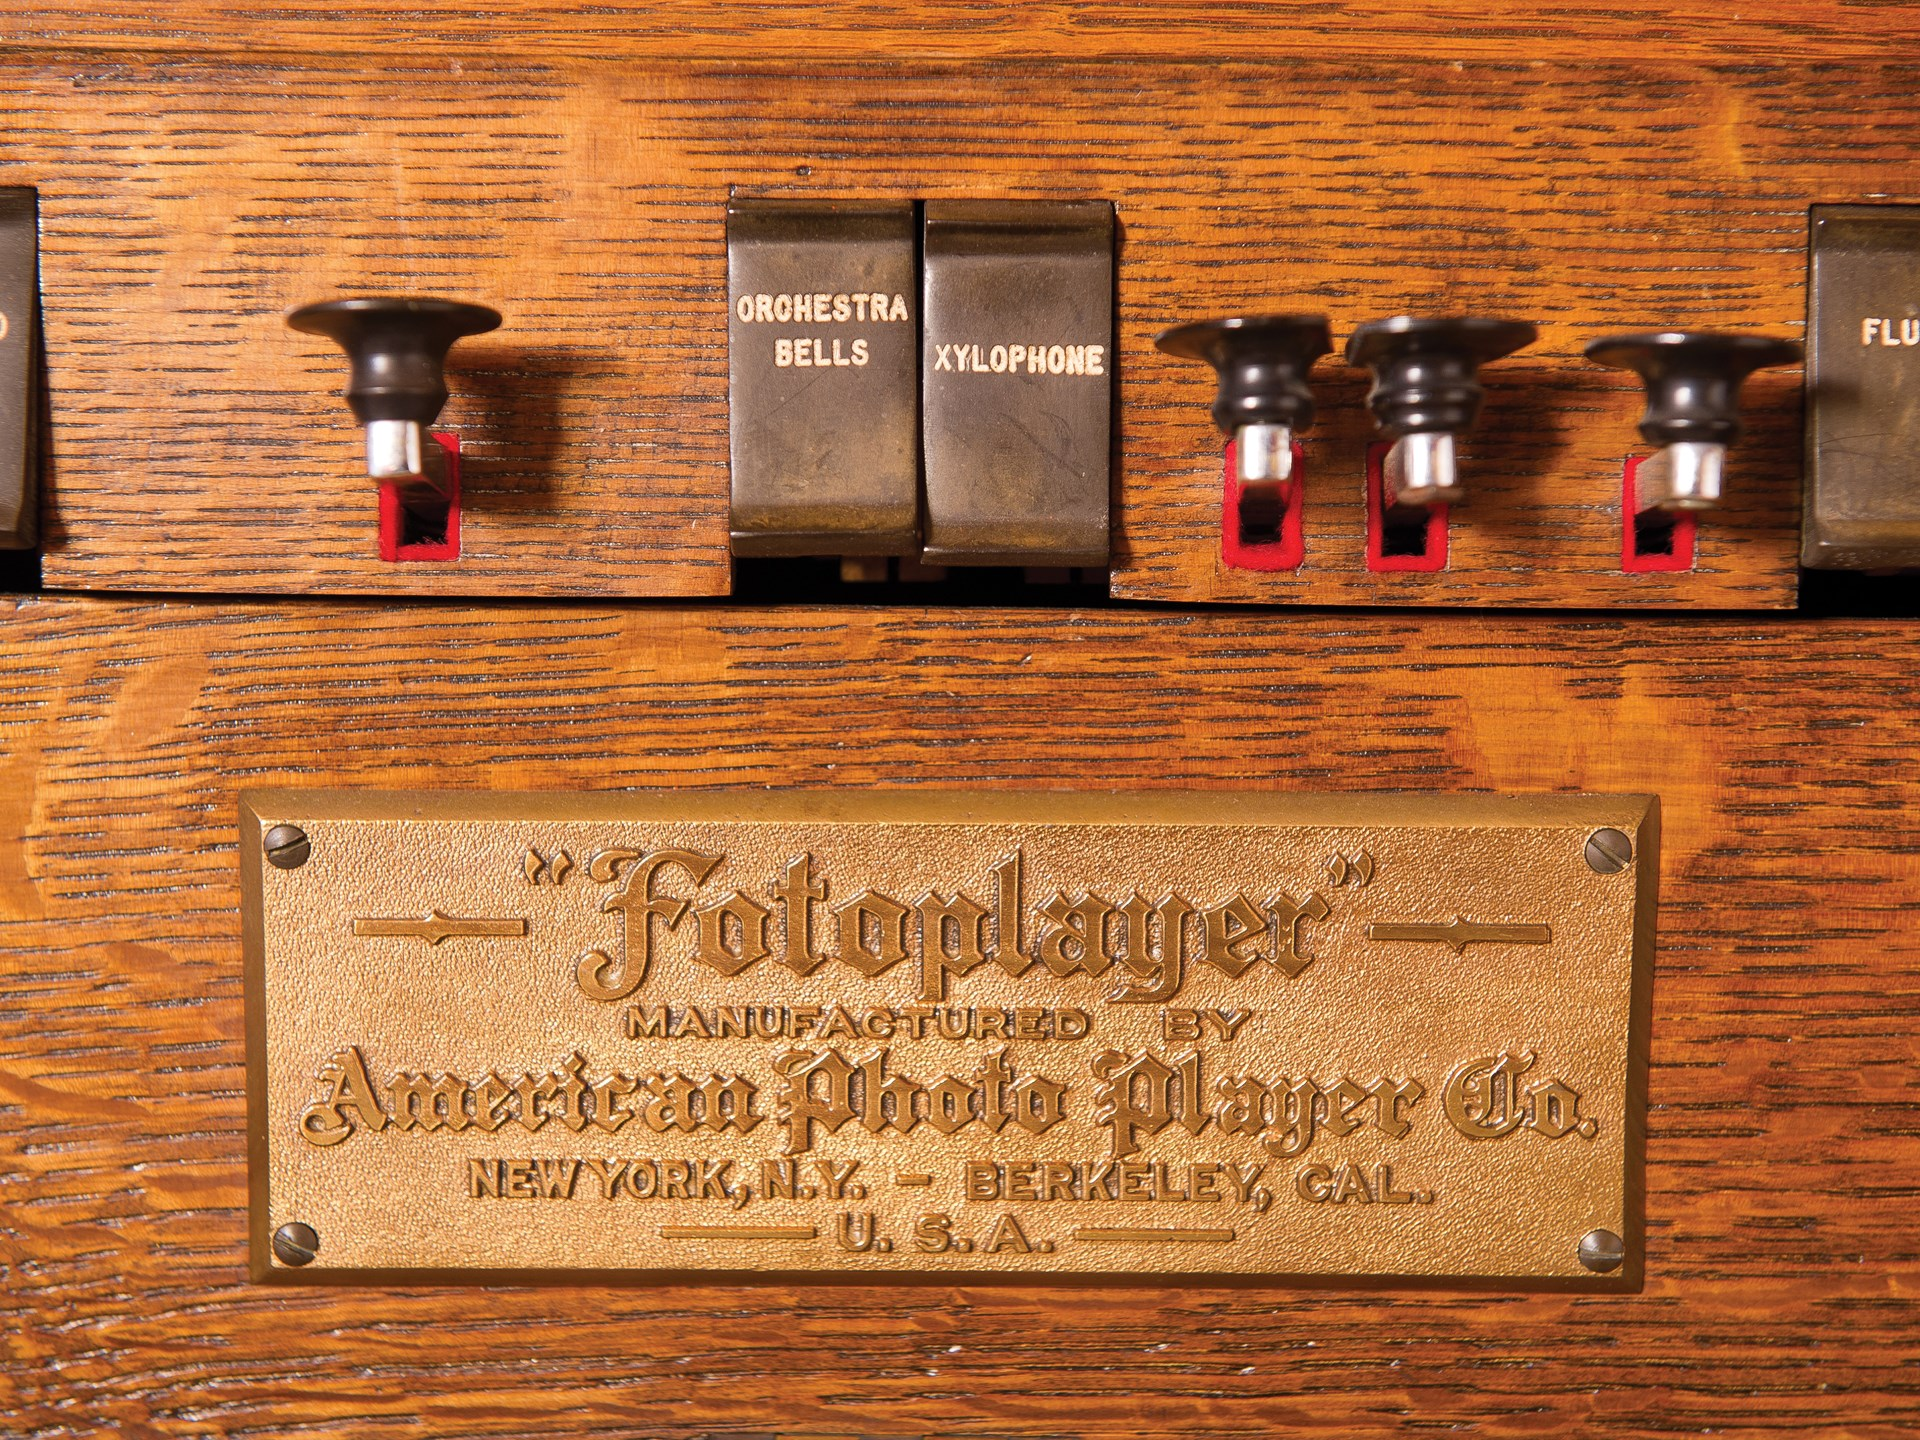 1915 American Fotoplayer, Style 45